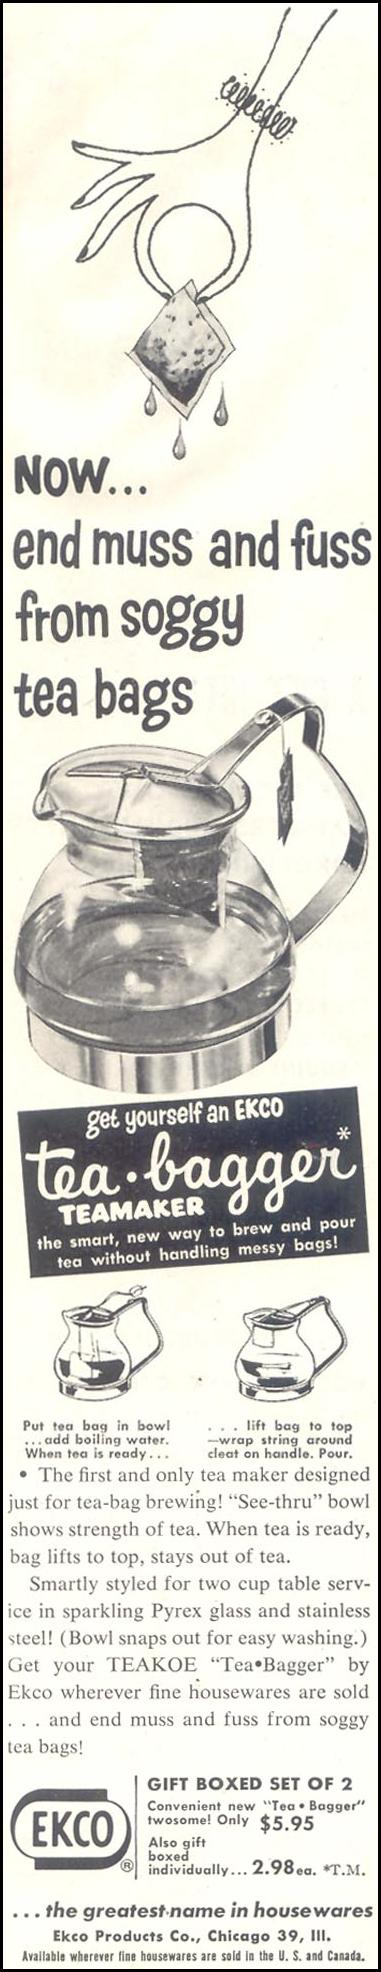 EKCO TEA-BAGGER TEAMAKER SATURDAY EVENING POST 12/10/1955 p. 58